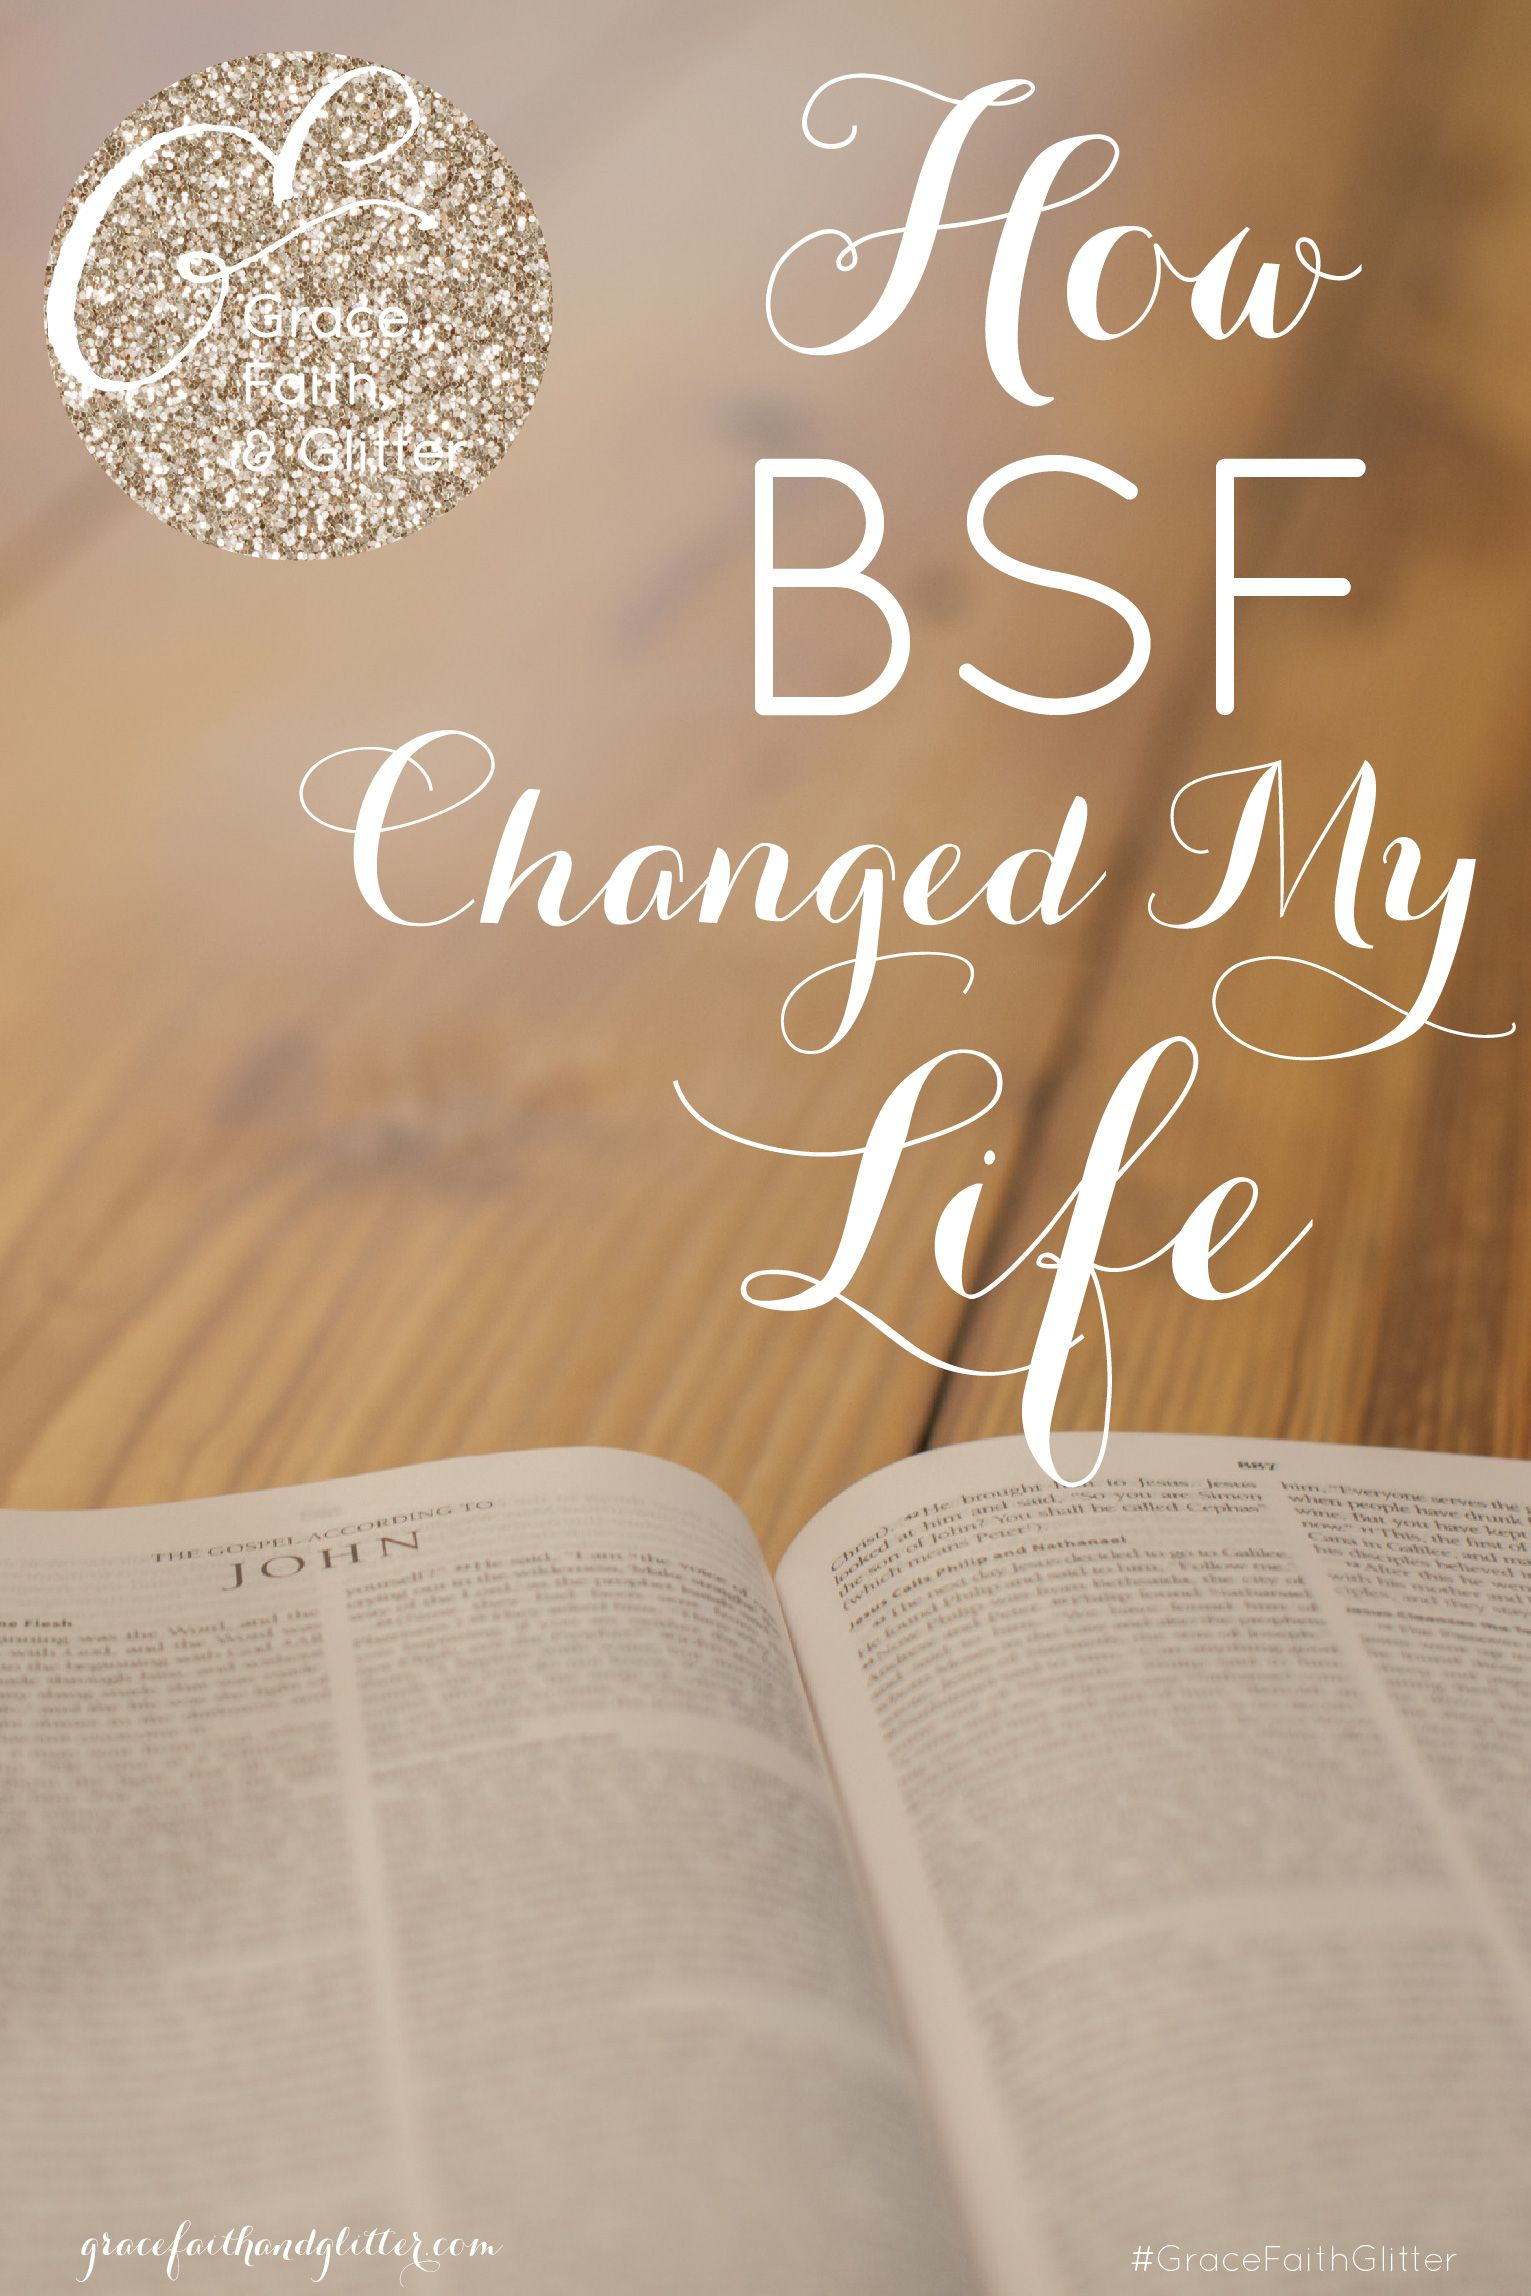 I truly am grateful for BSF in my life! I grew up in the church, but in stepping into my own faith, I needed that guidance into truly understanding God's Word for myself.